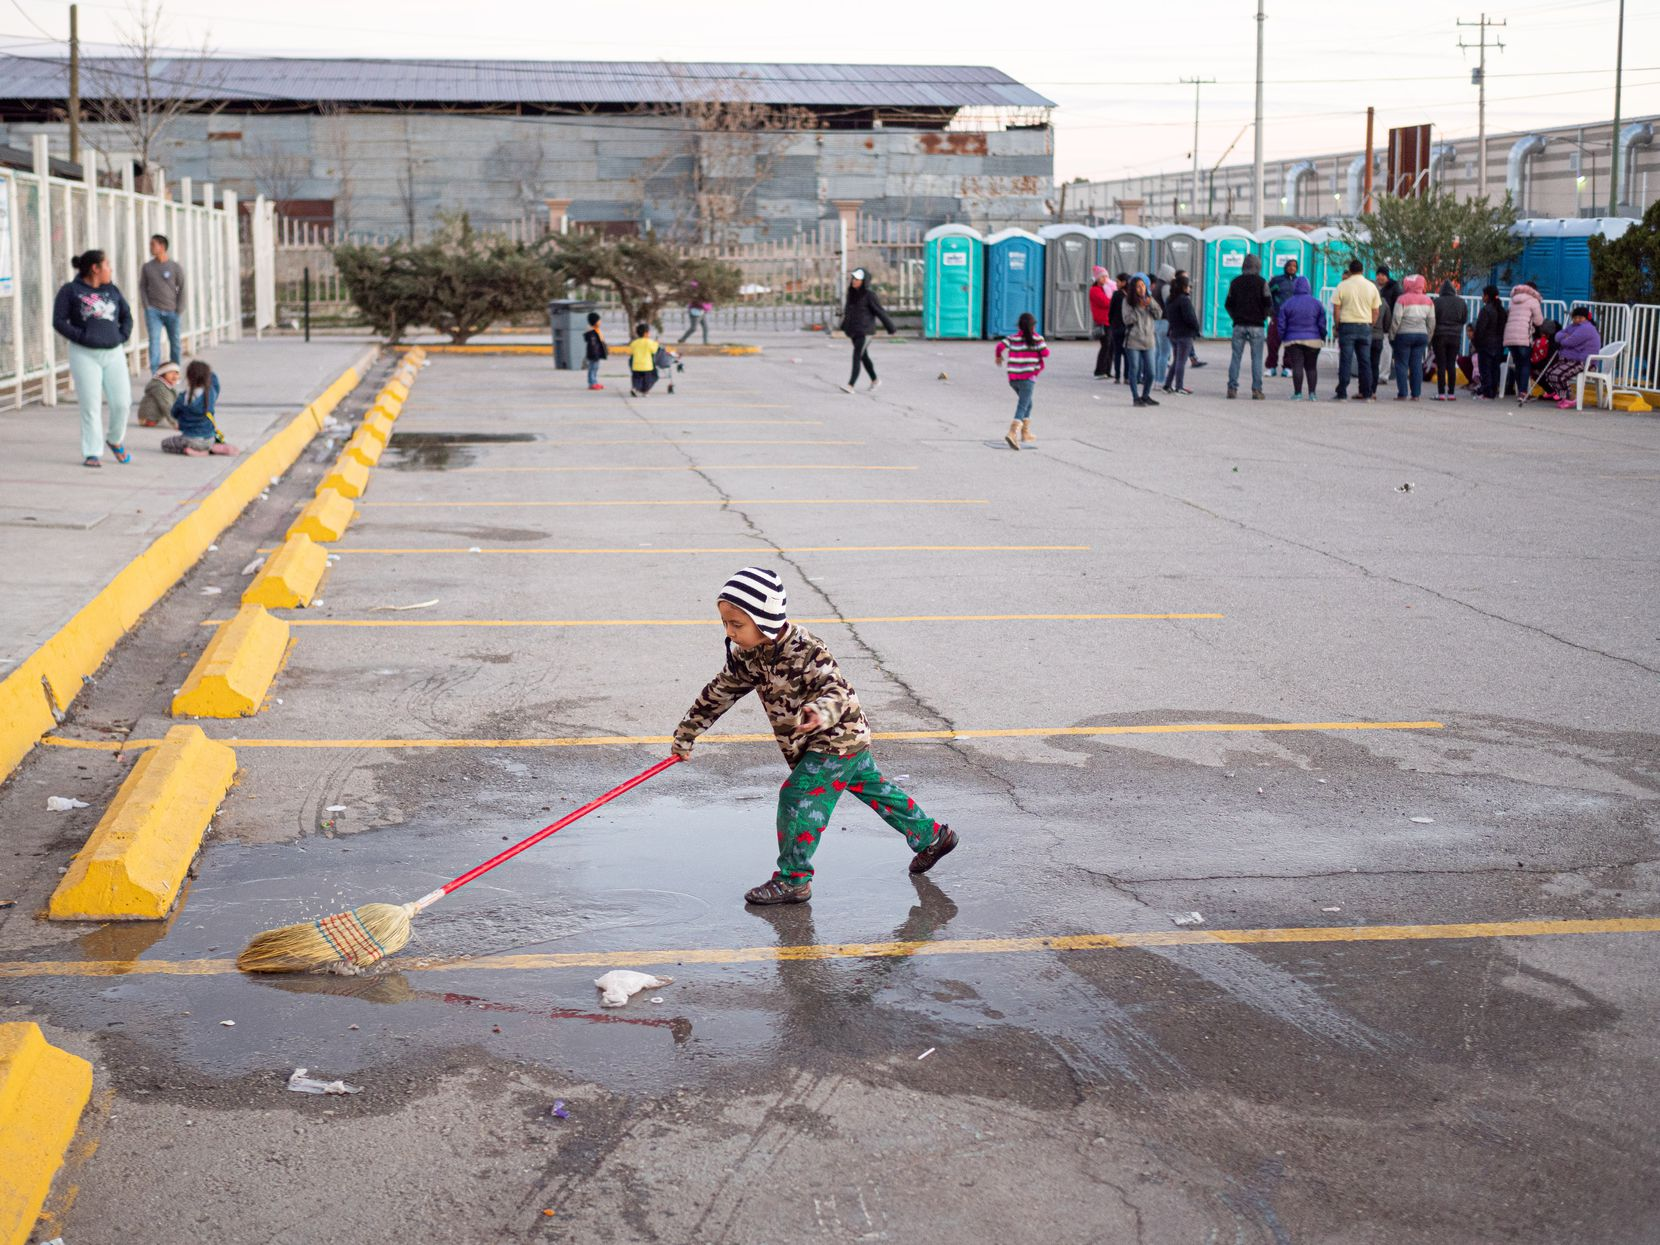 A young migrant plays with a broom in a puddle at the state run migrant shelter in Juarez.